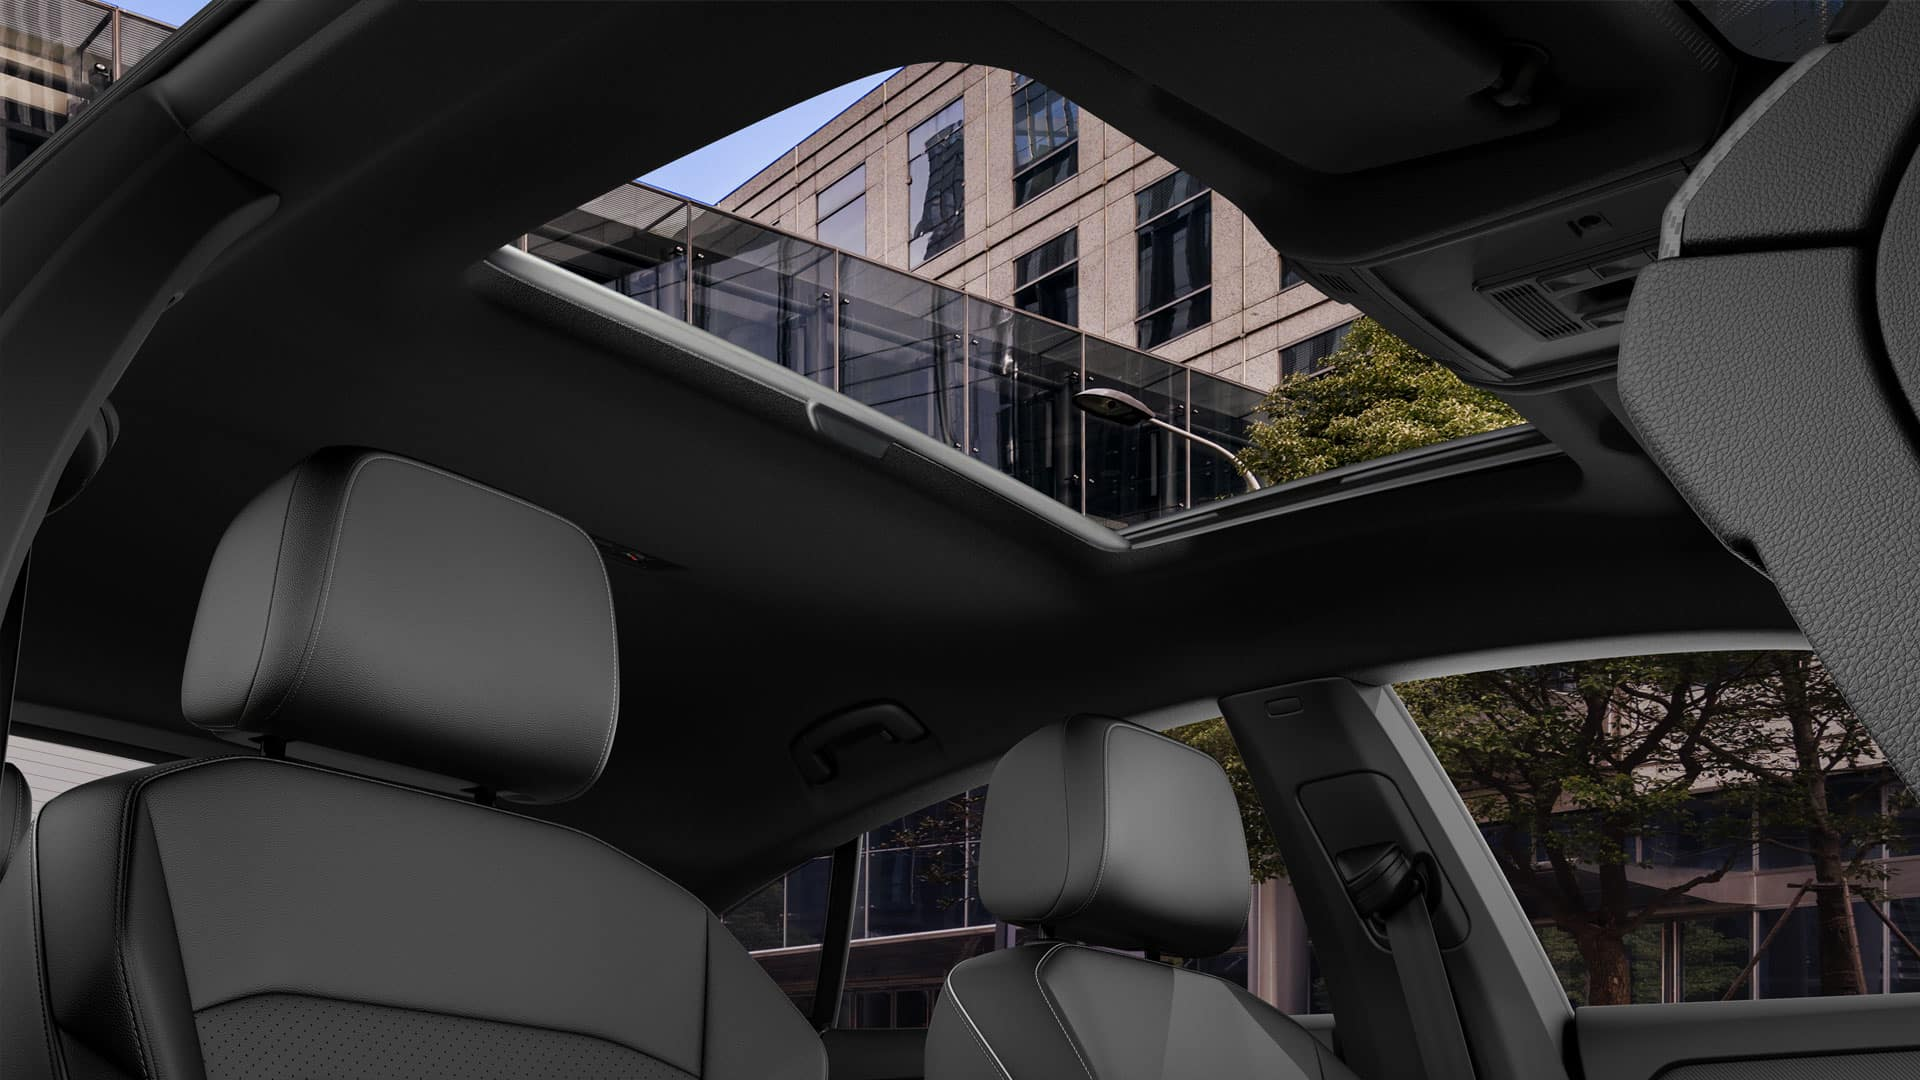 2019 VW Arteon panoramic sunroof